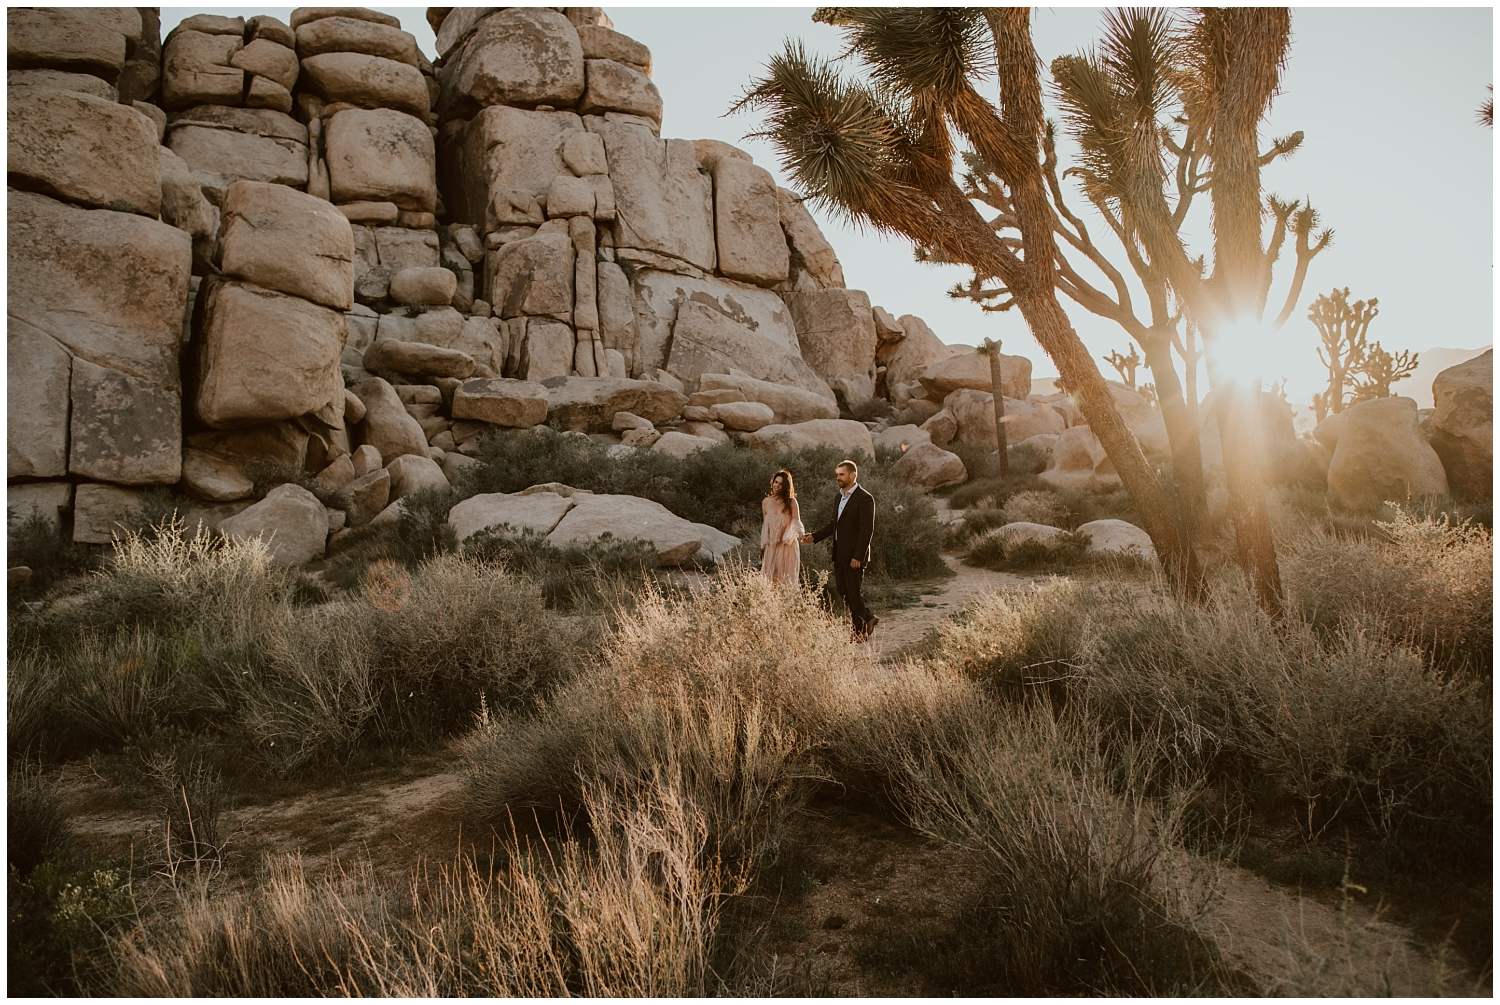 Cap-Rock-Joshua-Tree-Elopement-0076.jpg